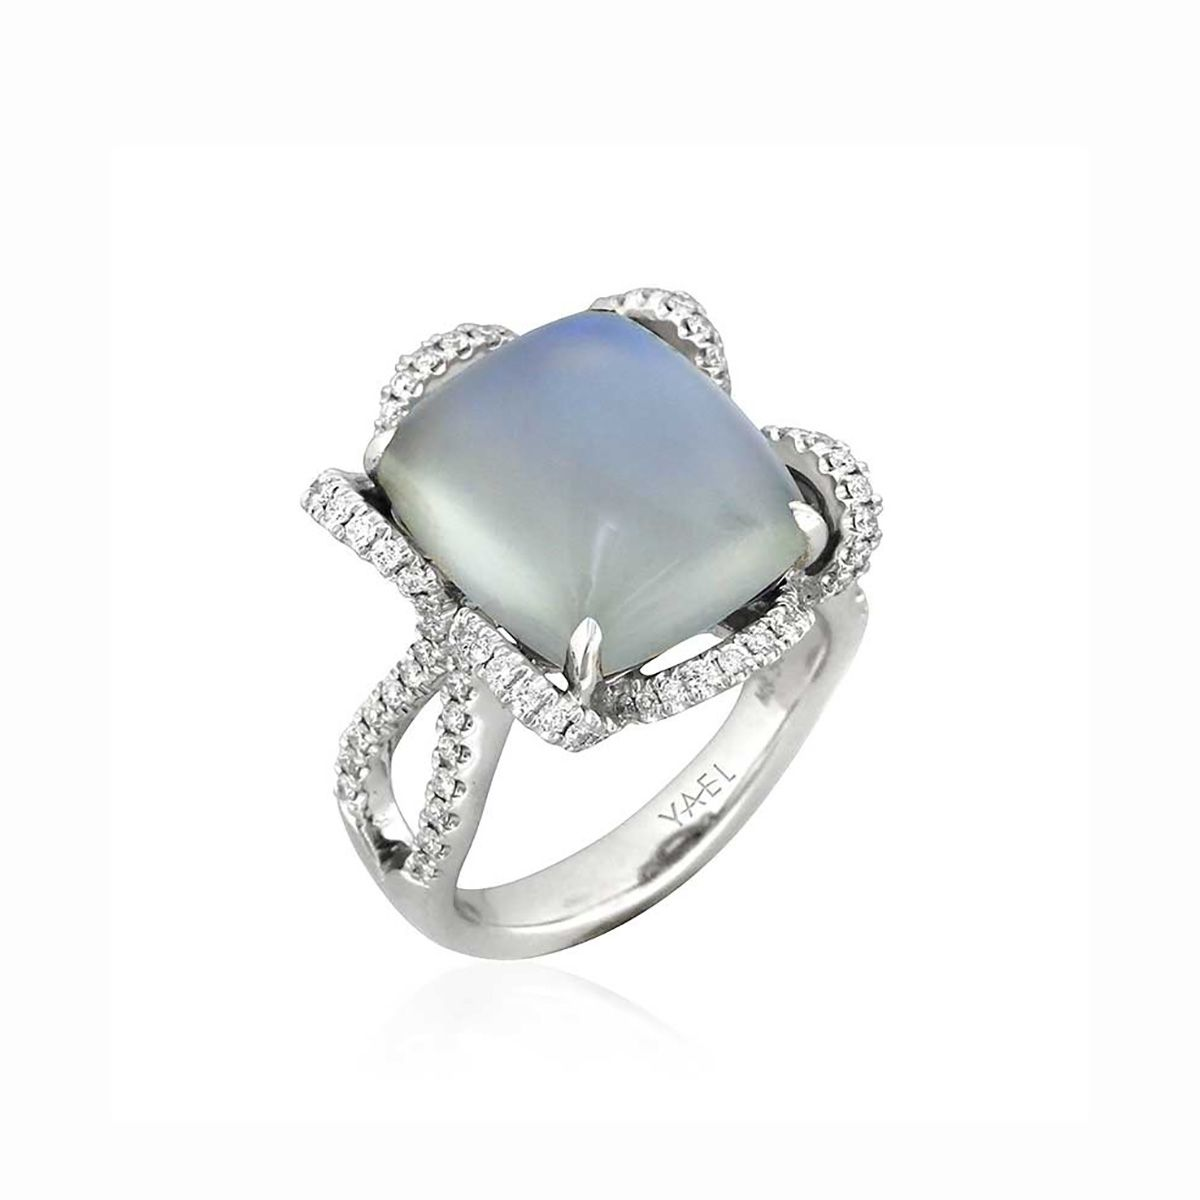 5eac5fd1d54f5 33 Moonstone Engagement Rings You're Going to Want Right Now